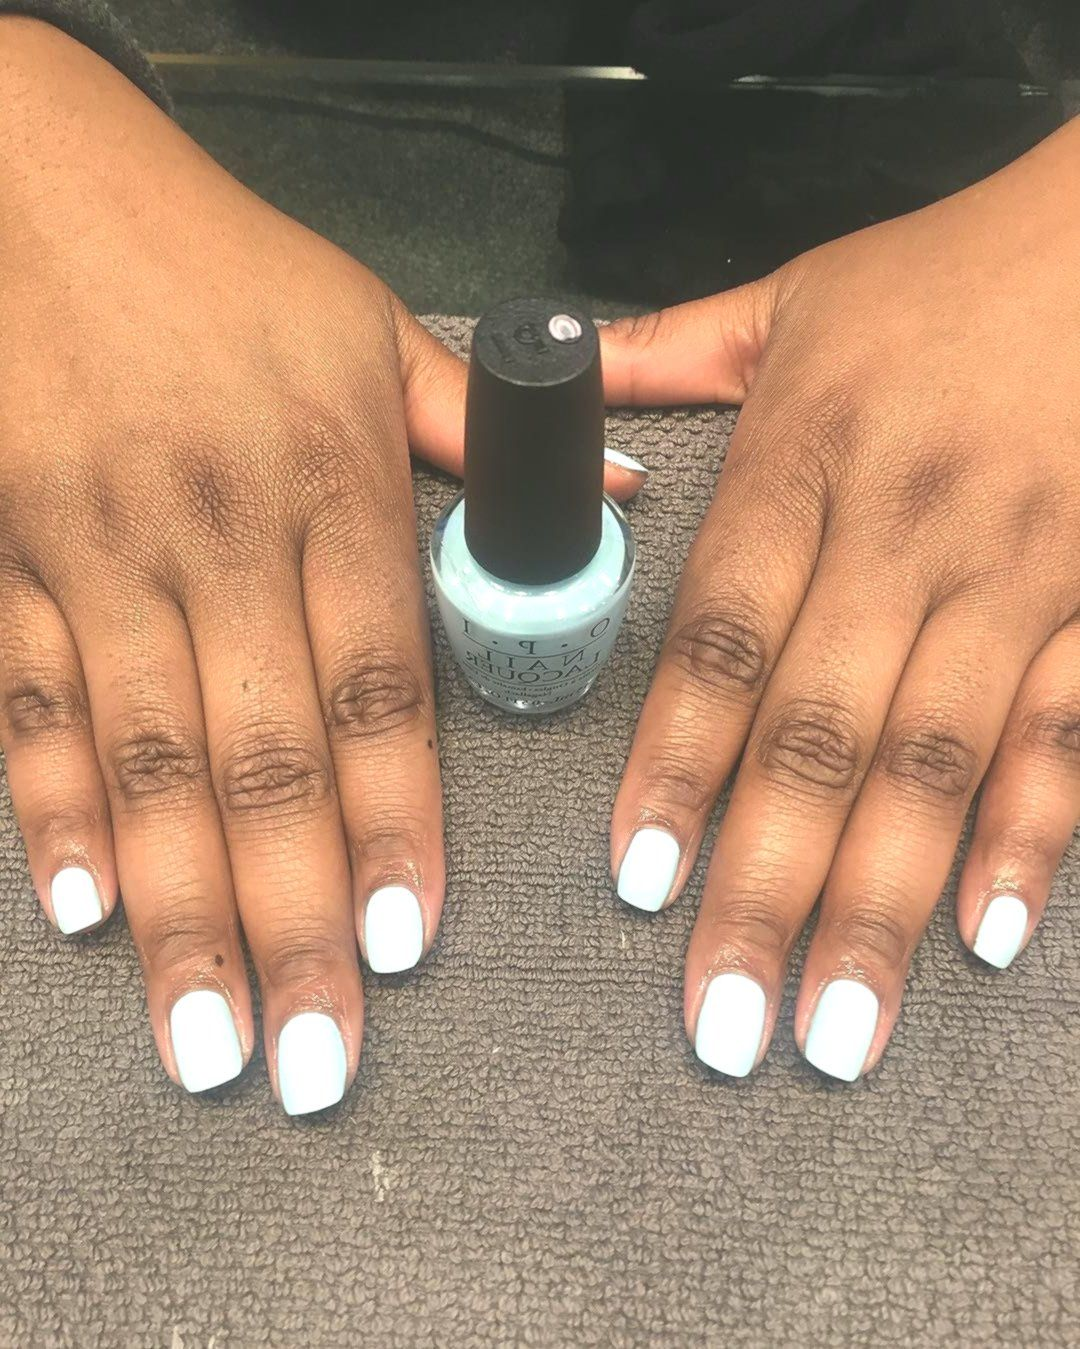 White Acrylic Nails On Dark Skin Yellow Nails Could Make Us Feel Embarrassed It Affects Both Men And Women White Acrylic Nails Blue Nail Polish Yellow Nails